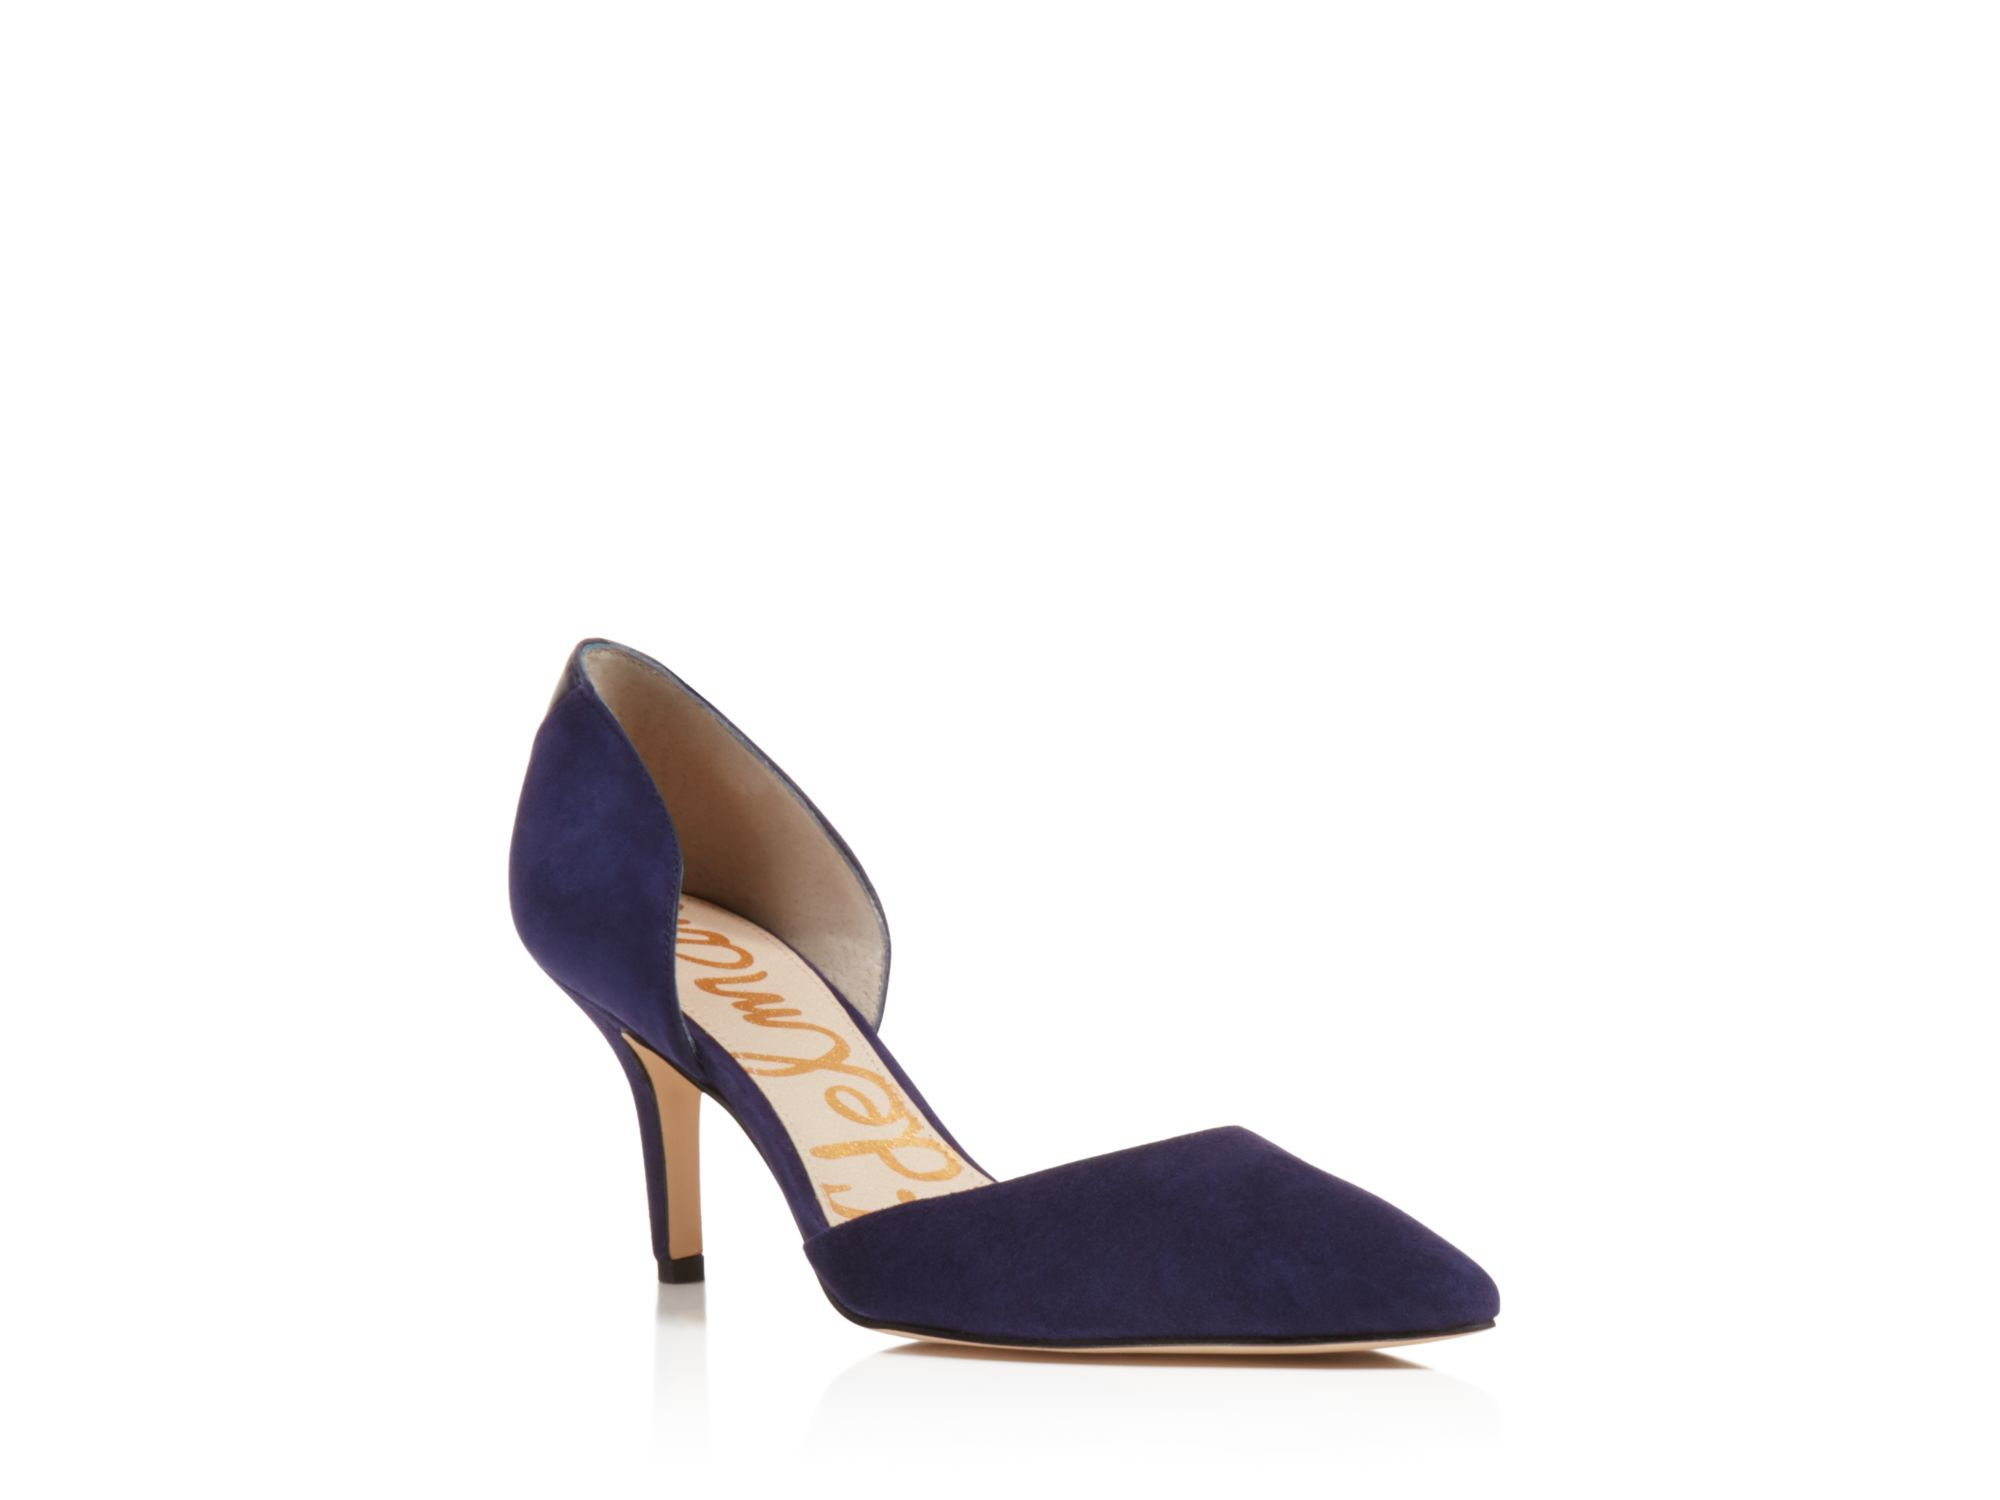 1d45a6049 Sam Edelman Opal Pointed Toe D'orsay Pumps in Blue - Lyst